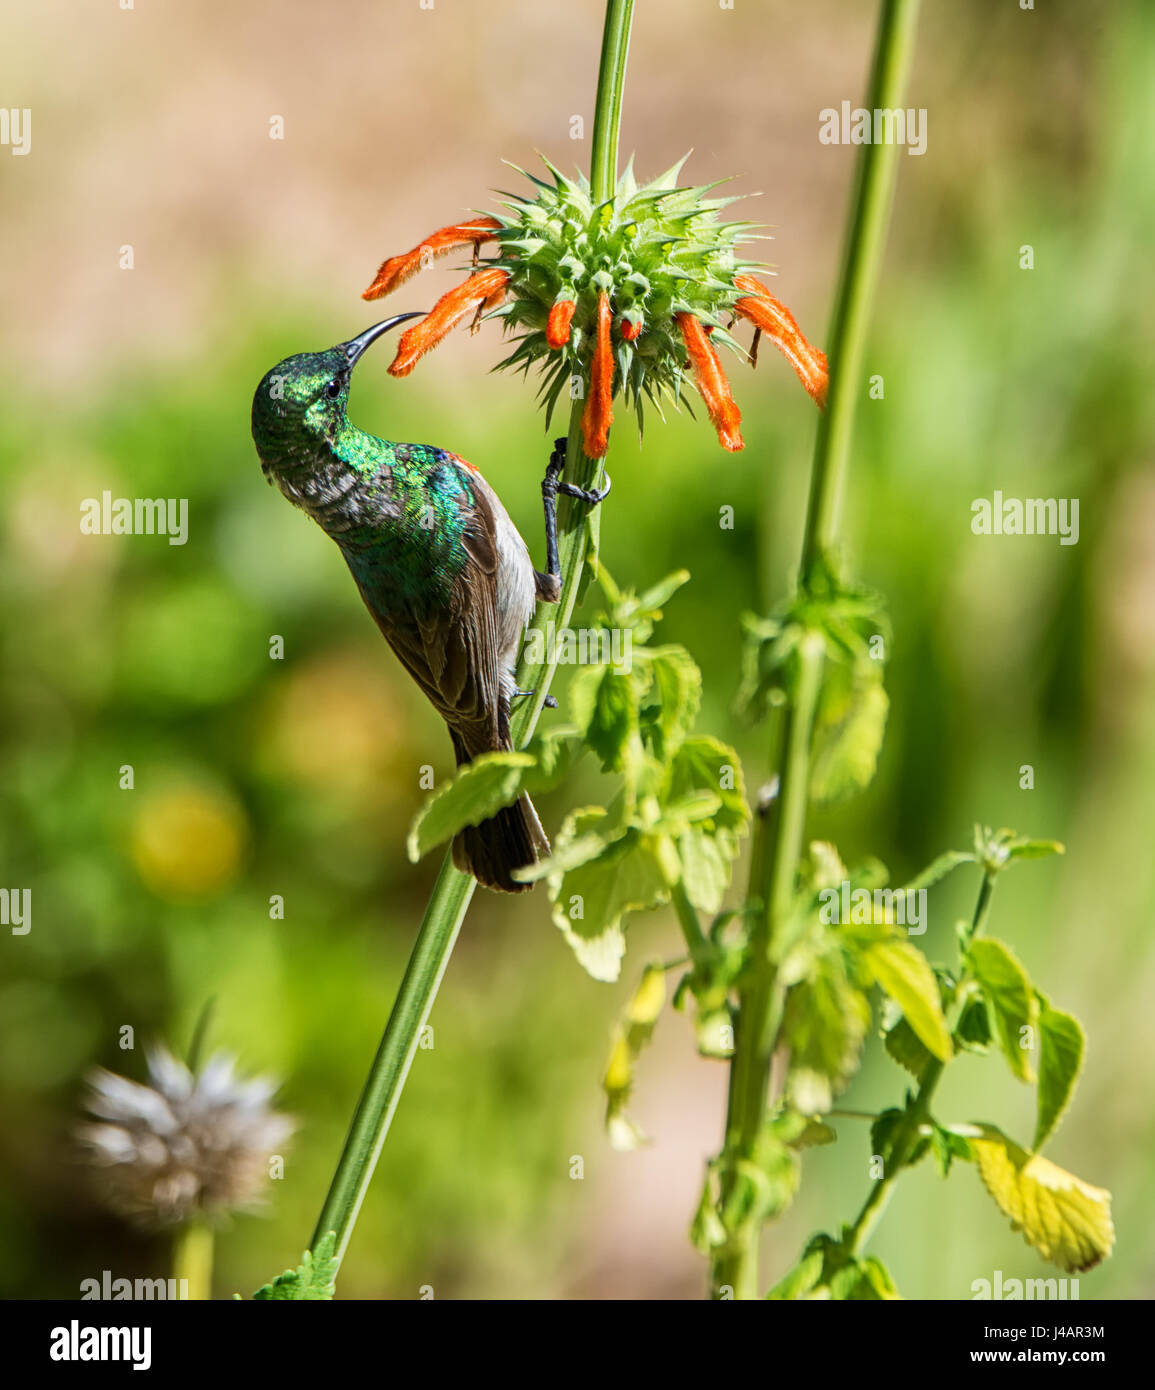 A Double-collared Sunbird perched on a WIld Dagga plant in Southern African savanna - Stock Image